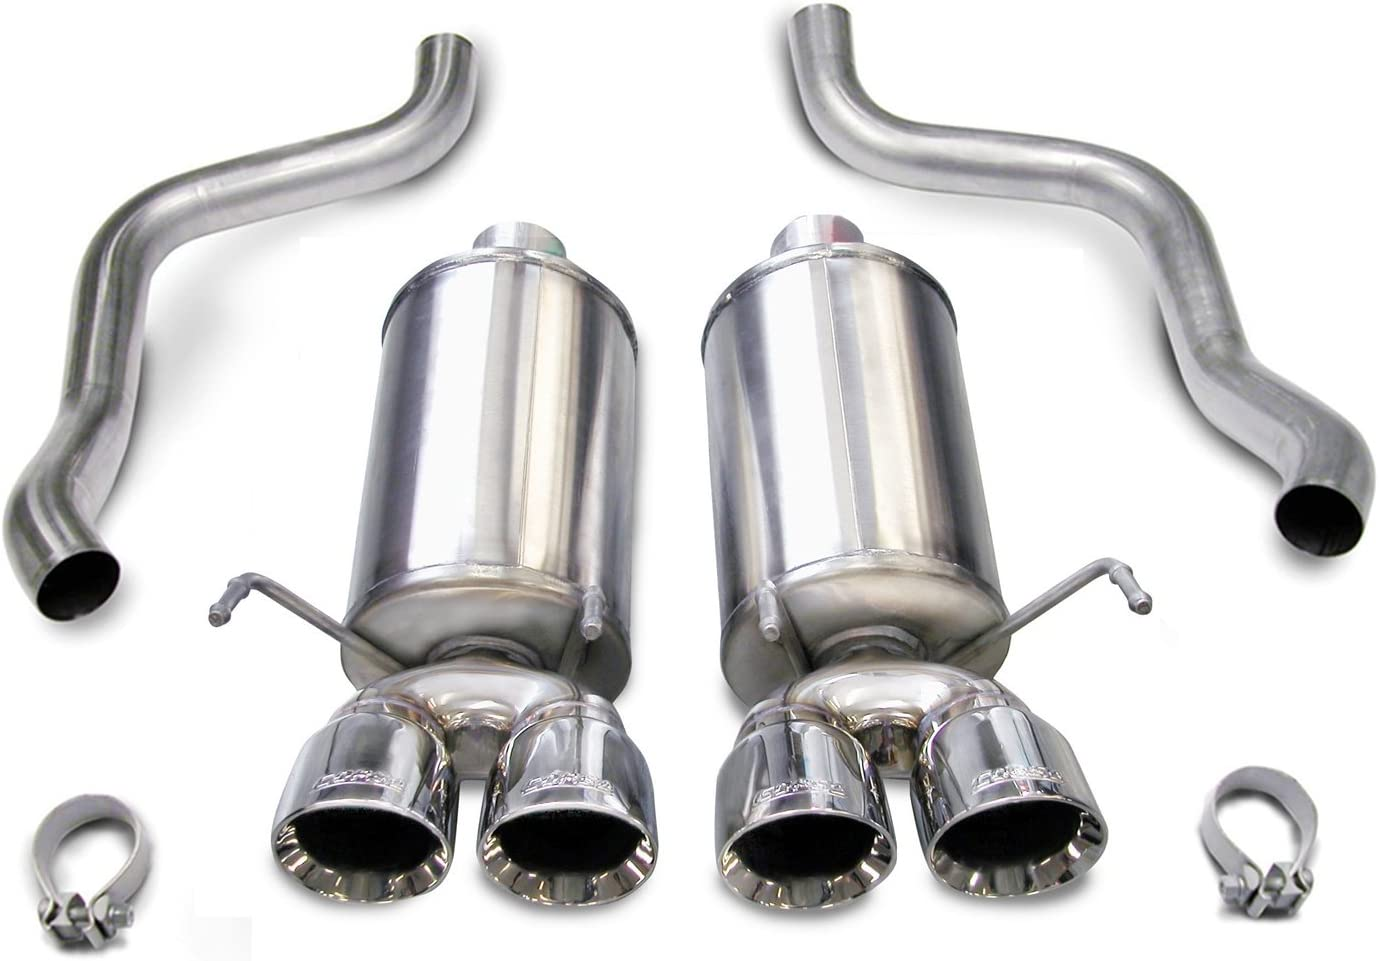 CORSA 14470 Axle-Back Mail order System Exhaust Max 70% OFF